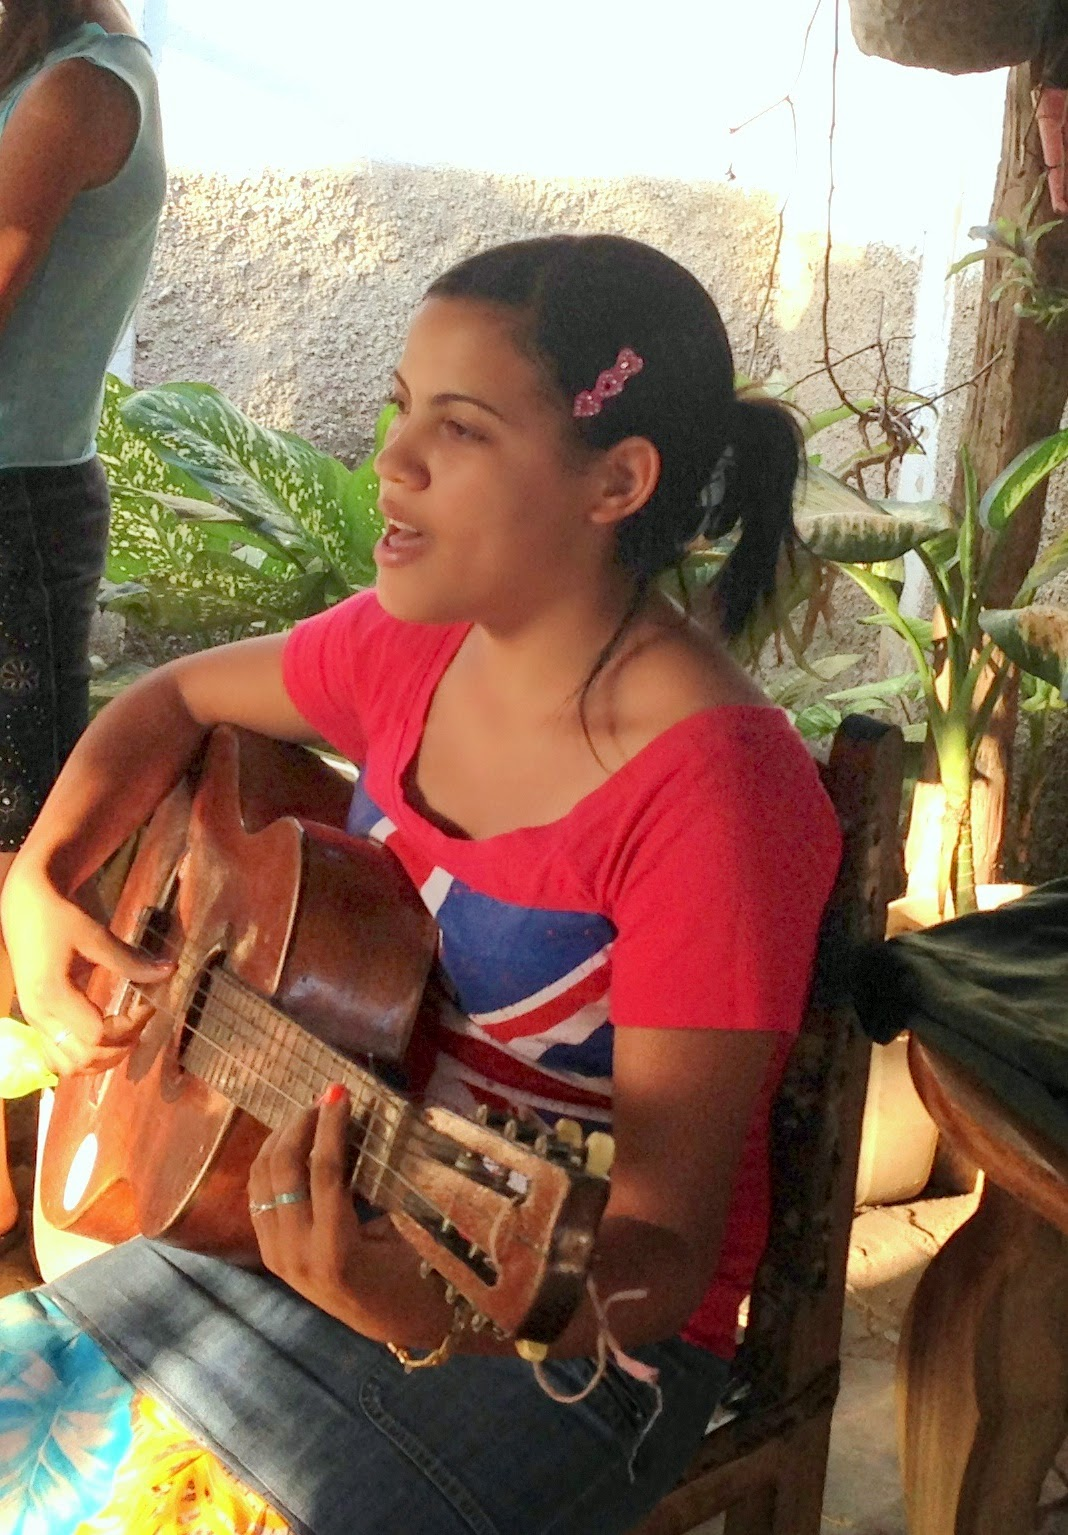 girl in red shirt with guitar singing